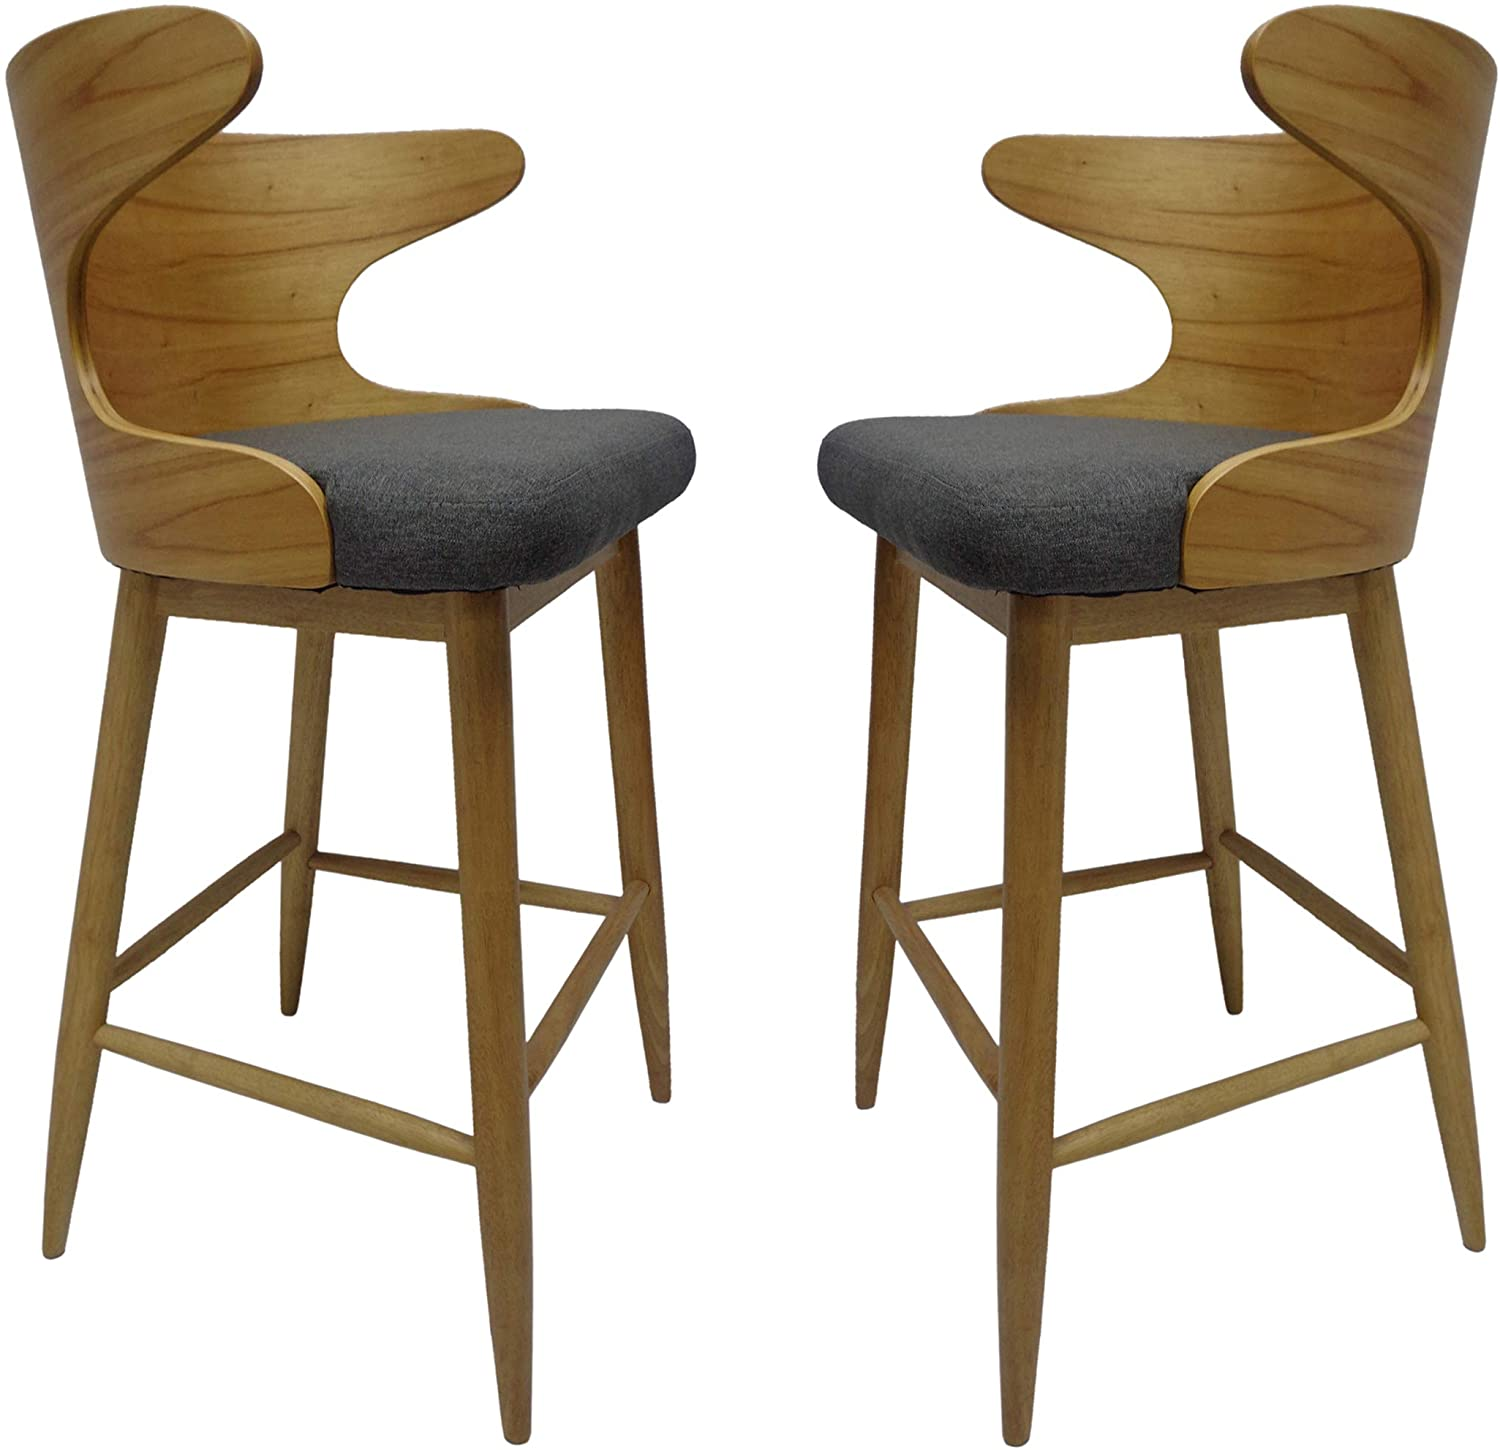 Mid Century Modern Fabric Barstools Set of 2 in Charcoal